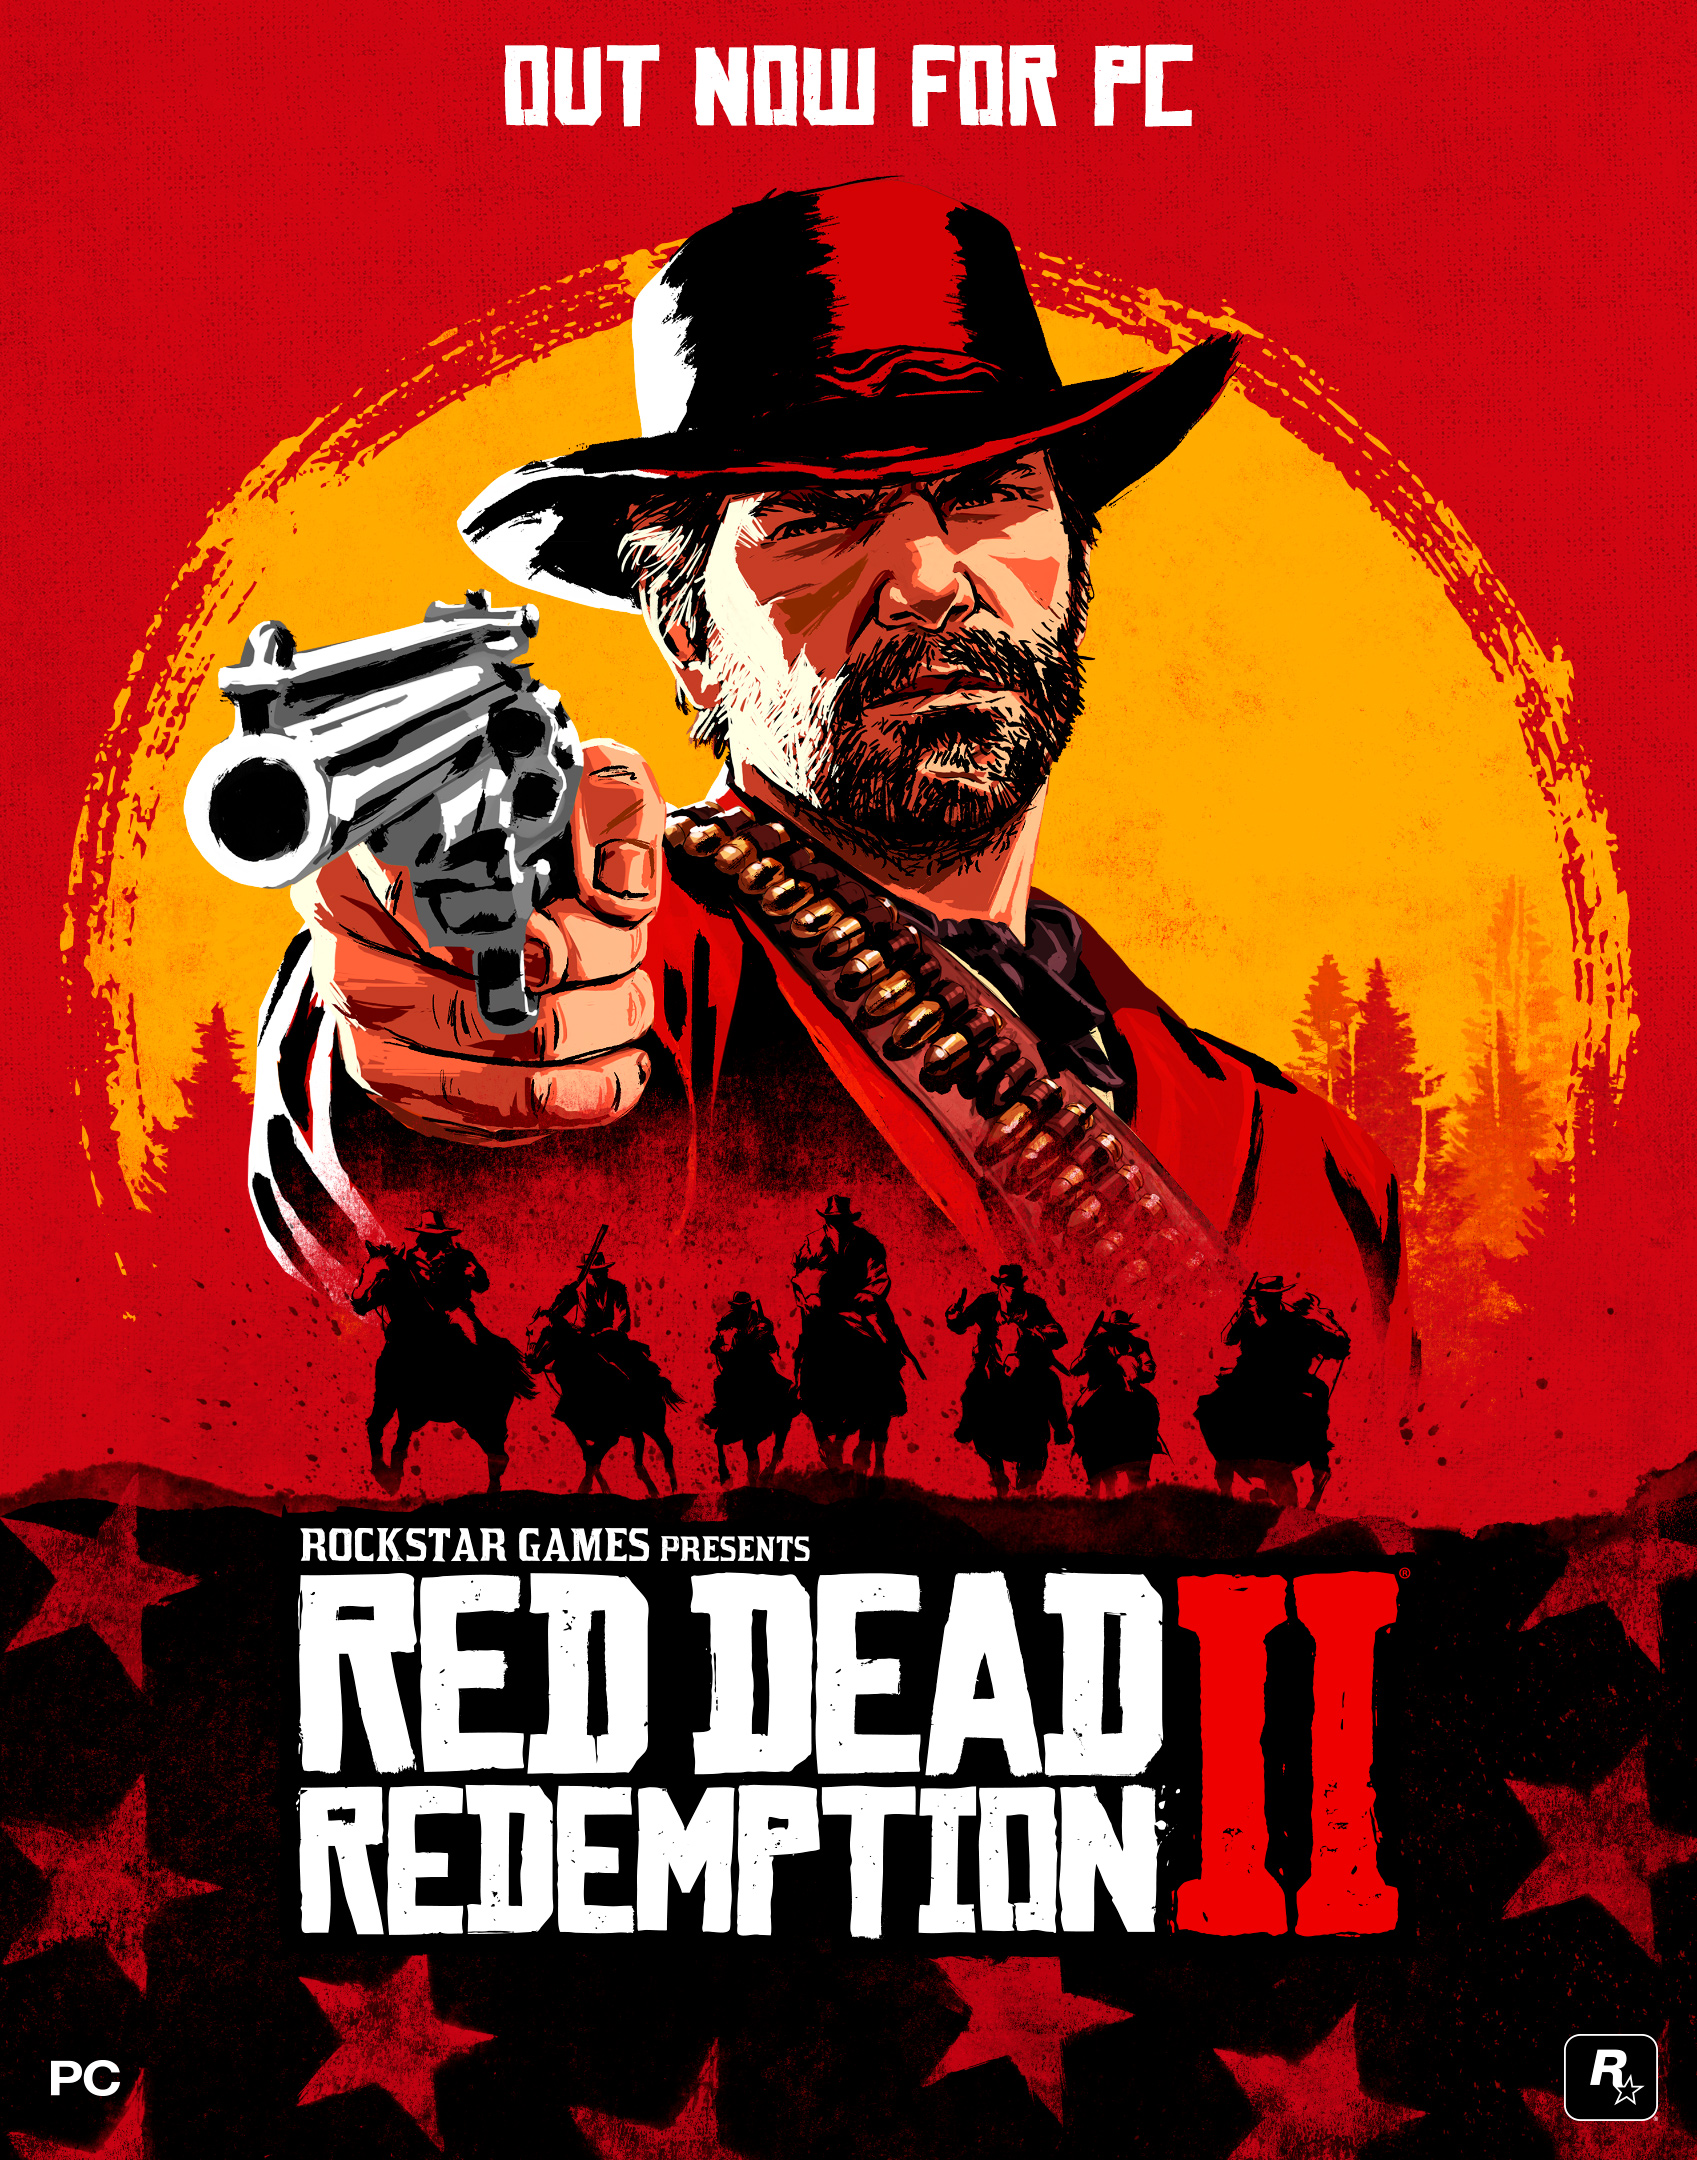 rdr2-artwork-37-hd.jpg